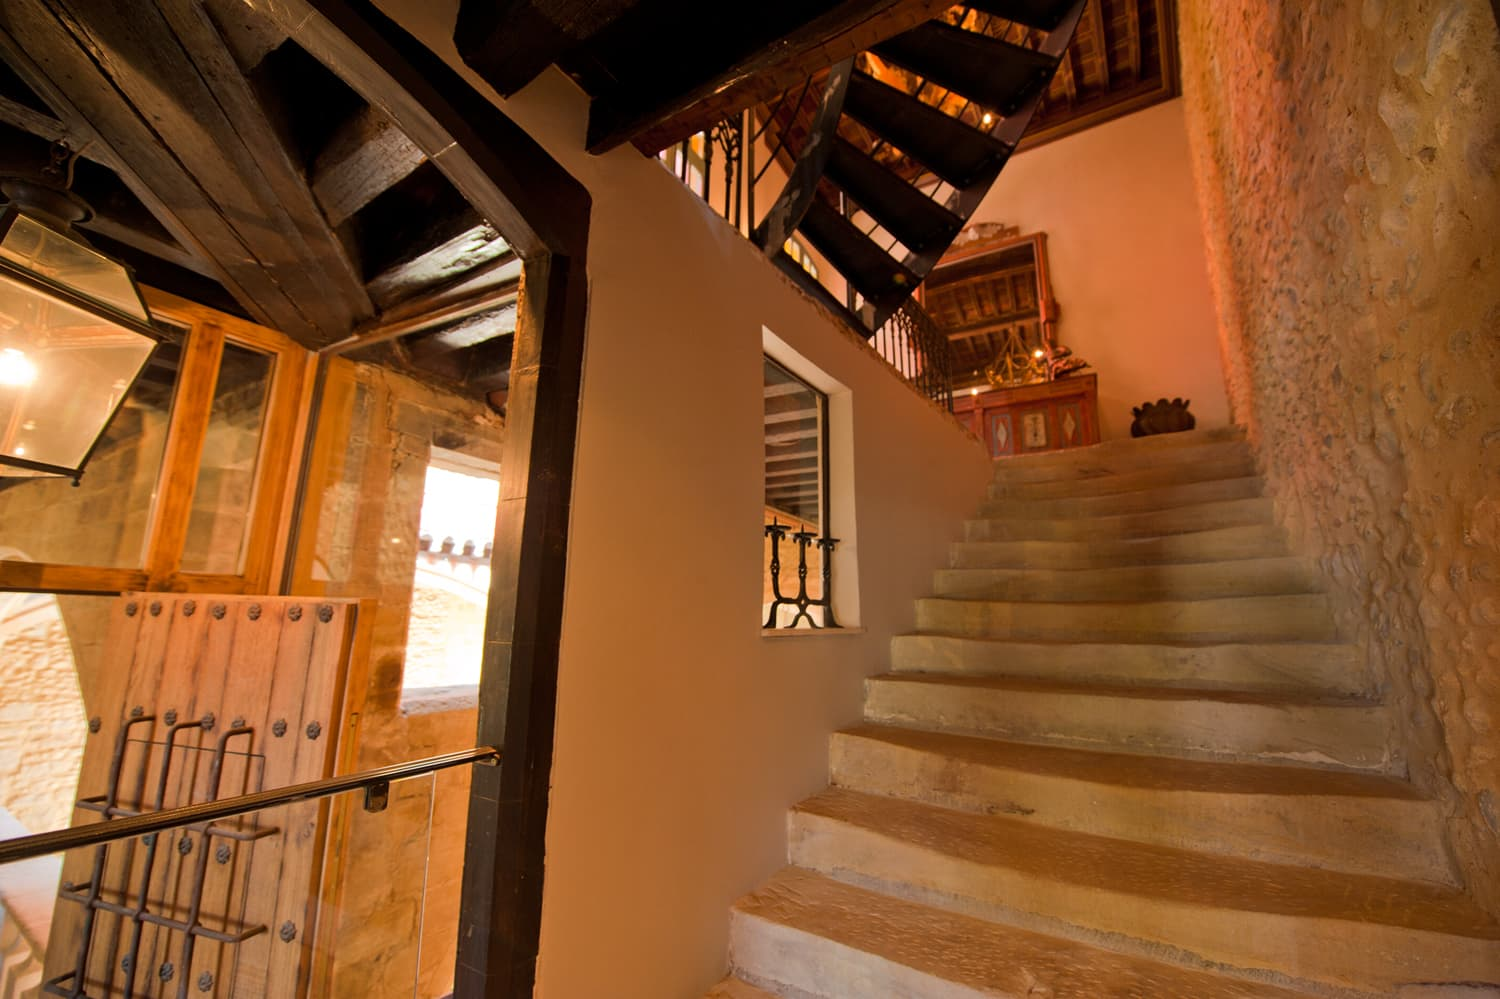 Staircase in Languedoc rental home